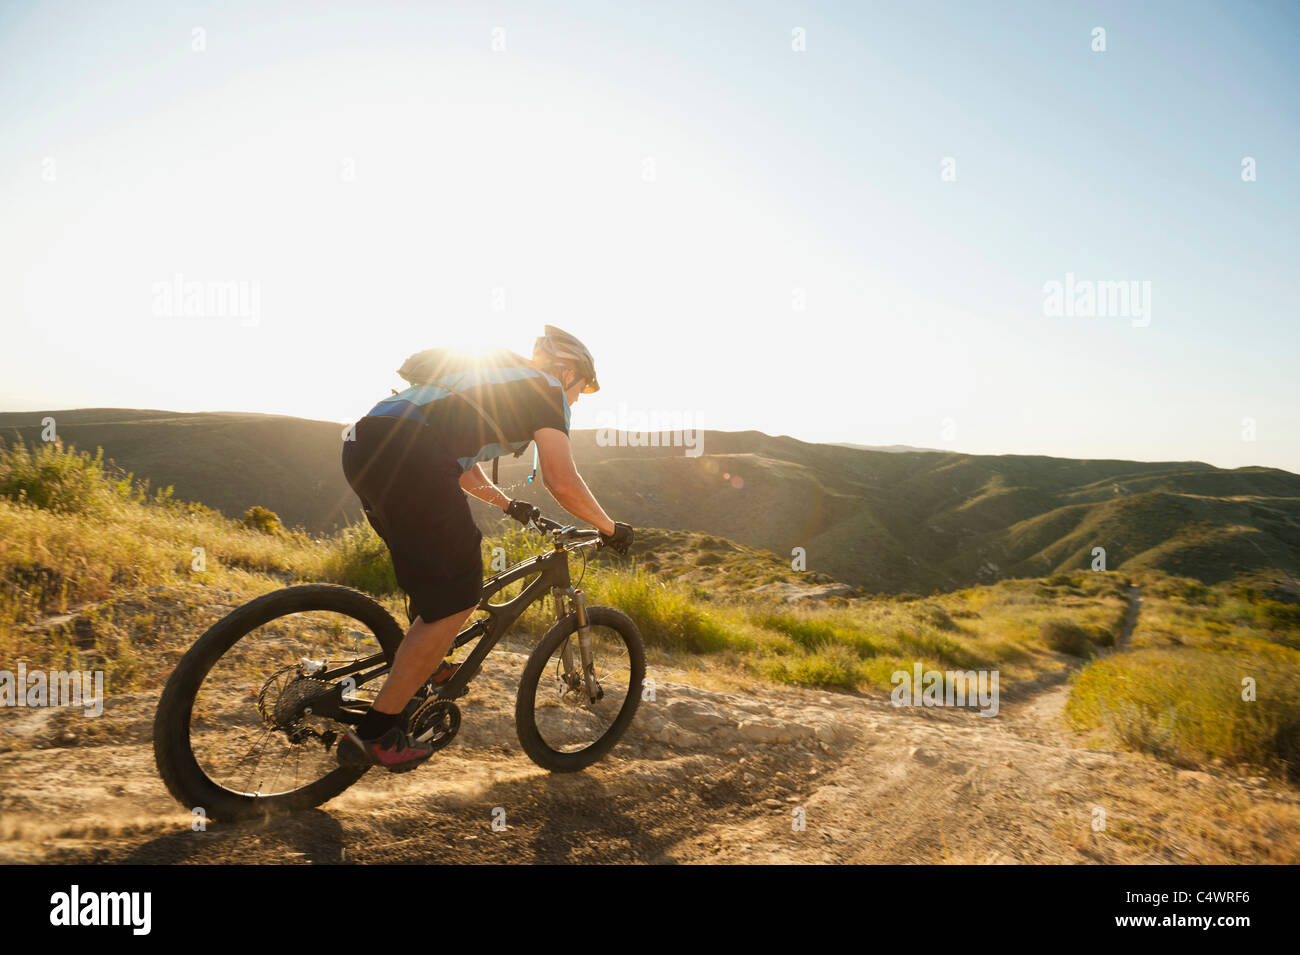 USA,California,Laguna Beach,Mountain biker riding downhill Stock Foto